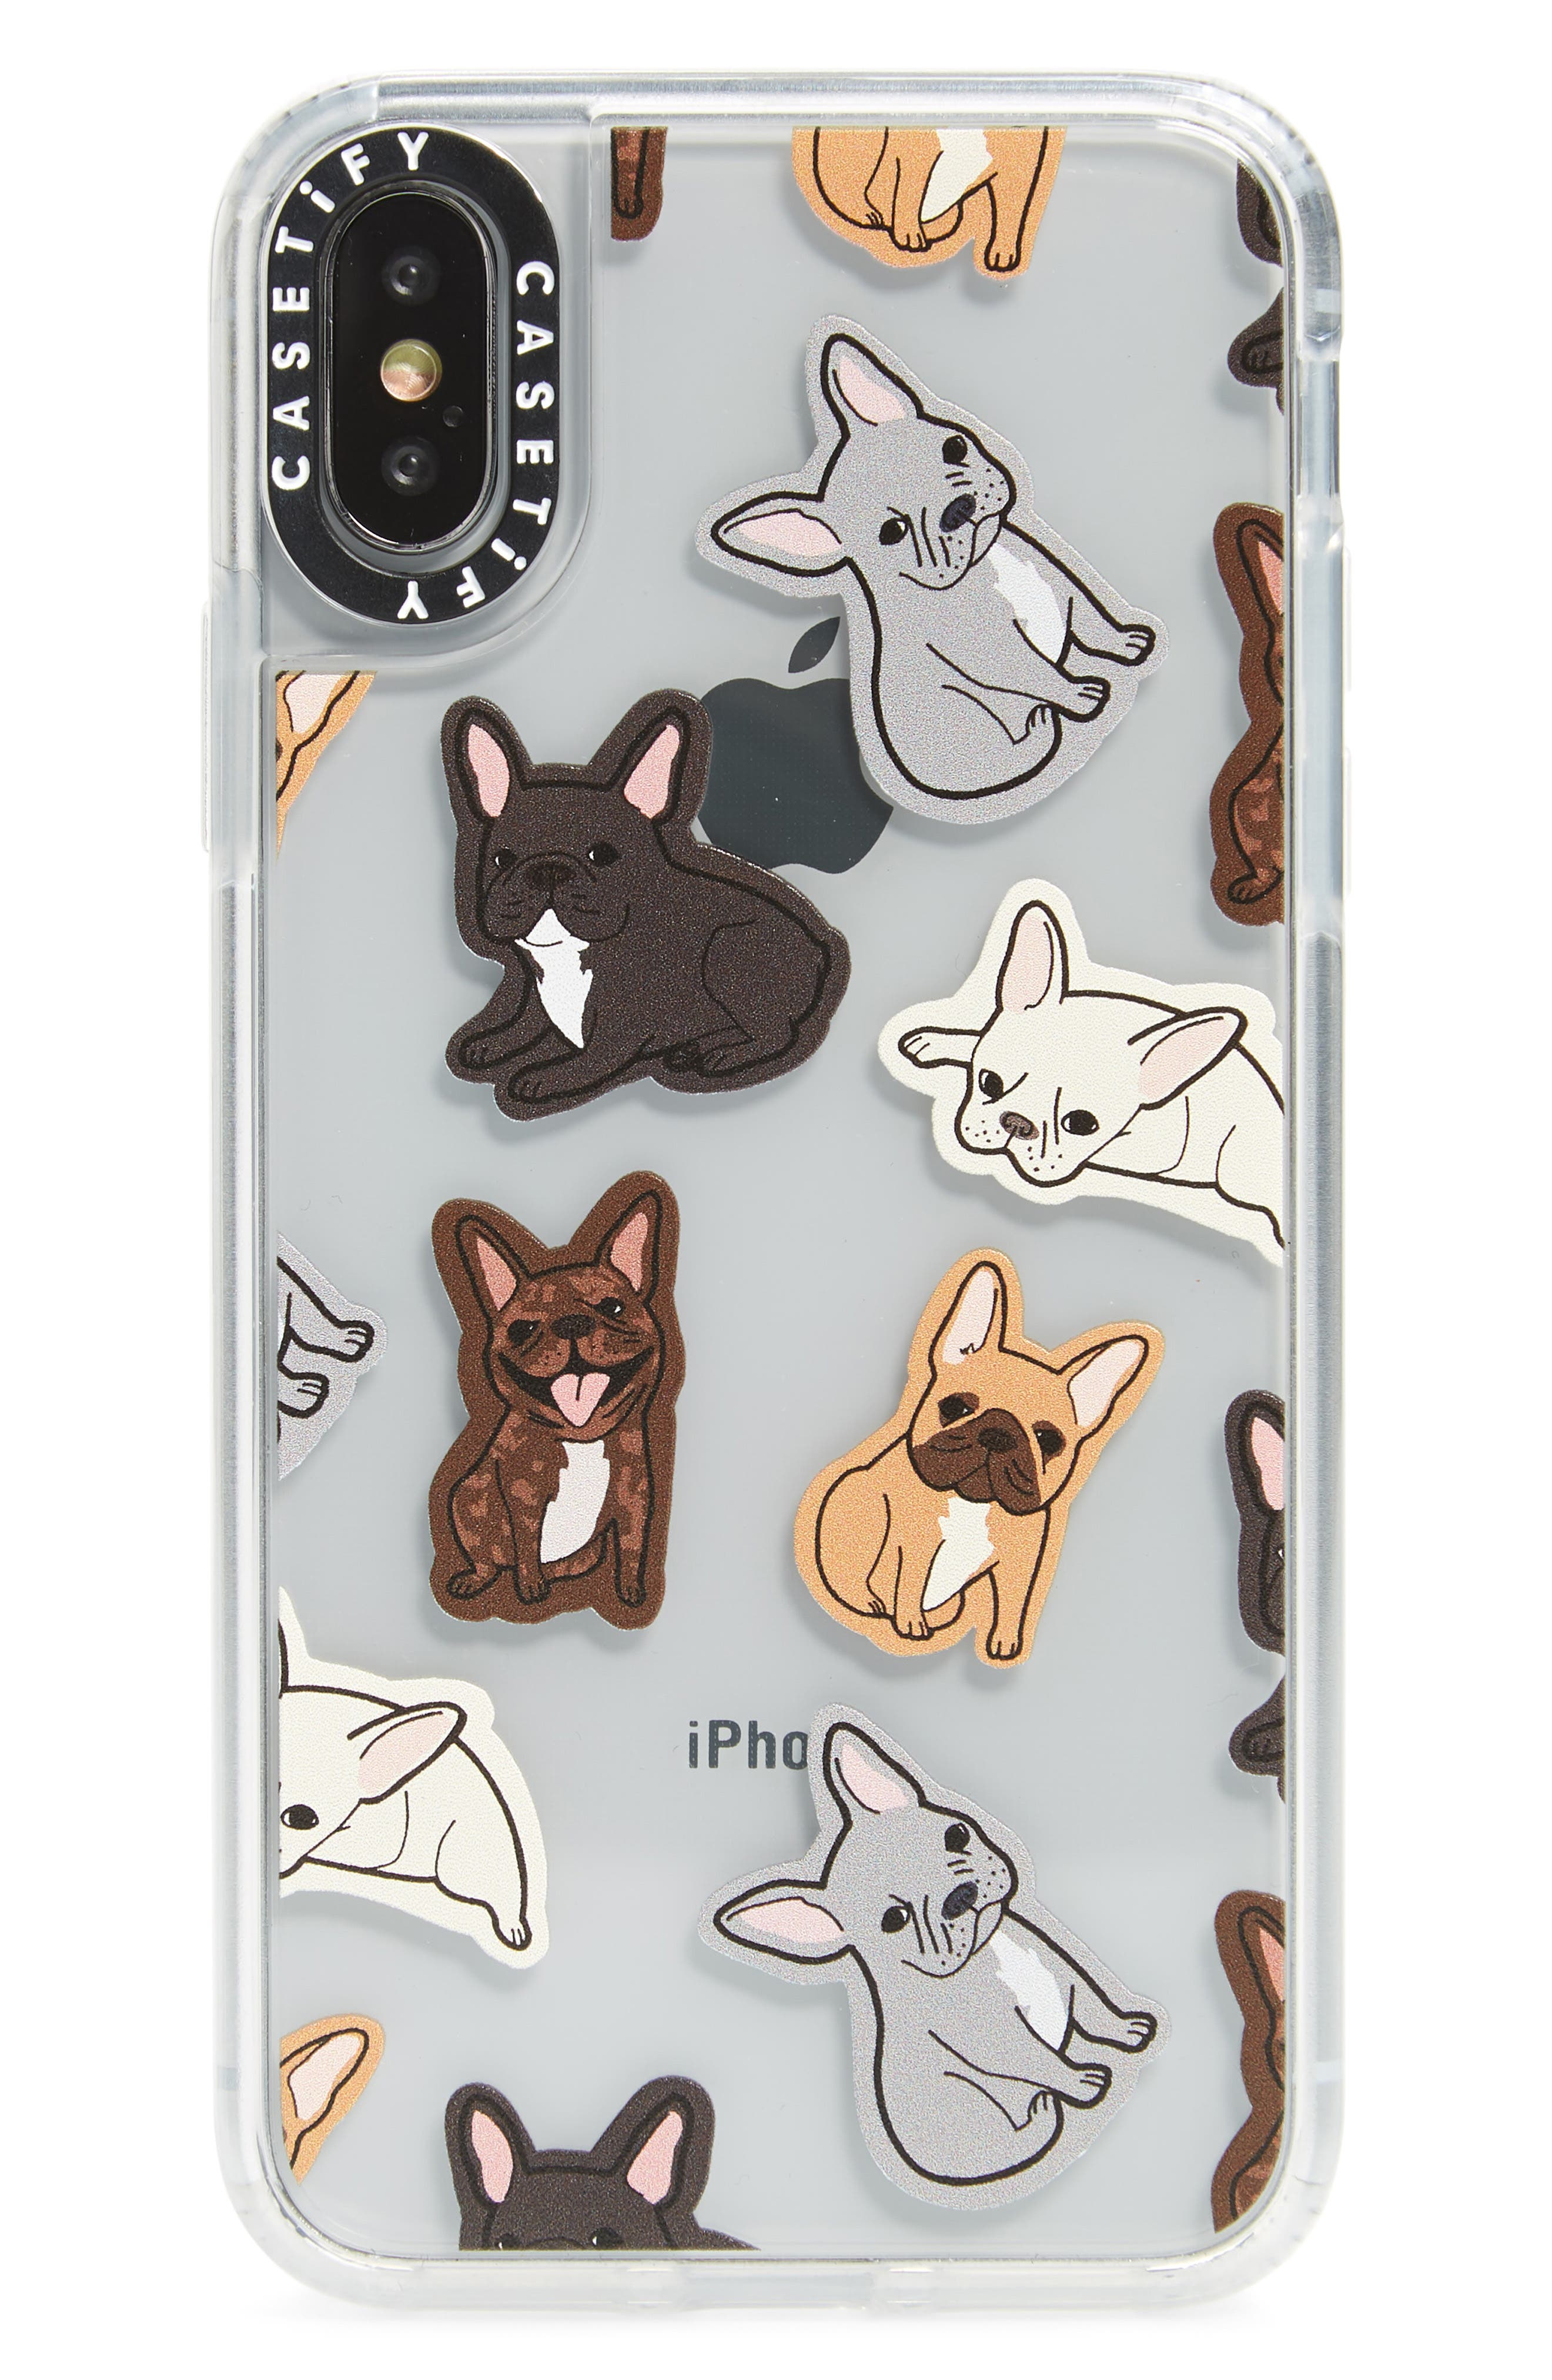 Excuse my Frenchie iPhone X/Xs/Xs Max & XR Case,                             Main thumbnail 1, color,                             TAN/ BLACK/ WHITE